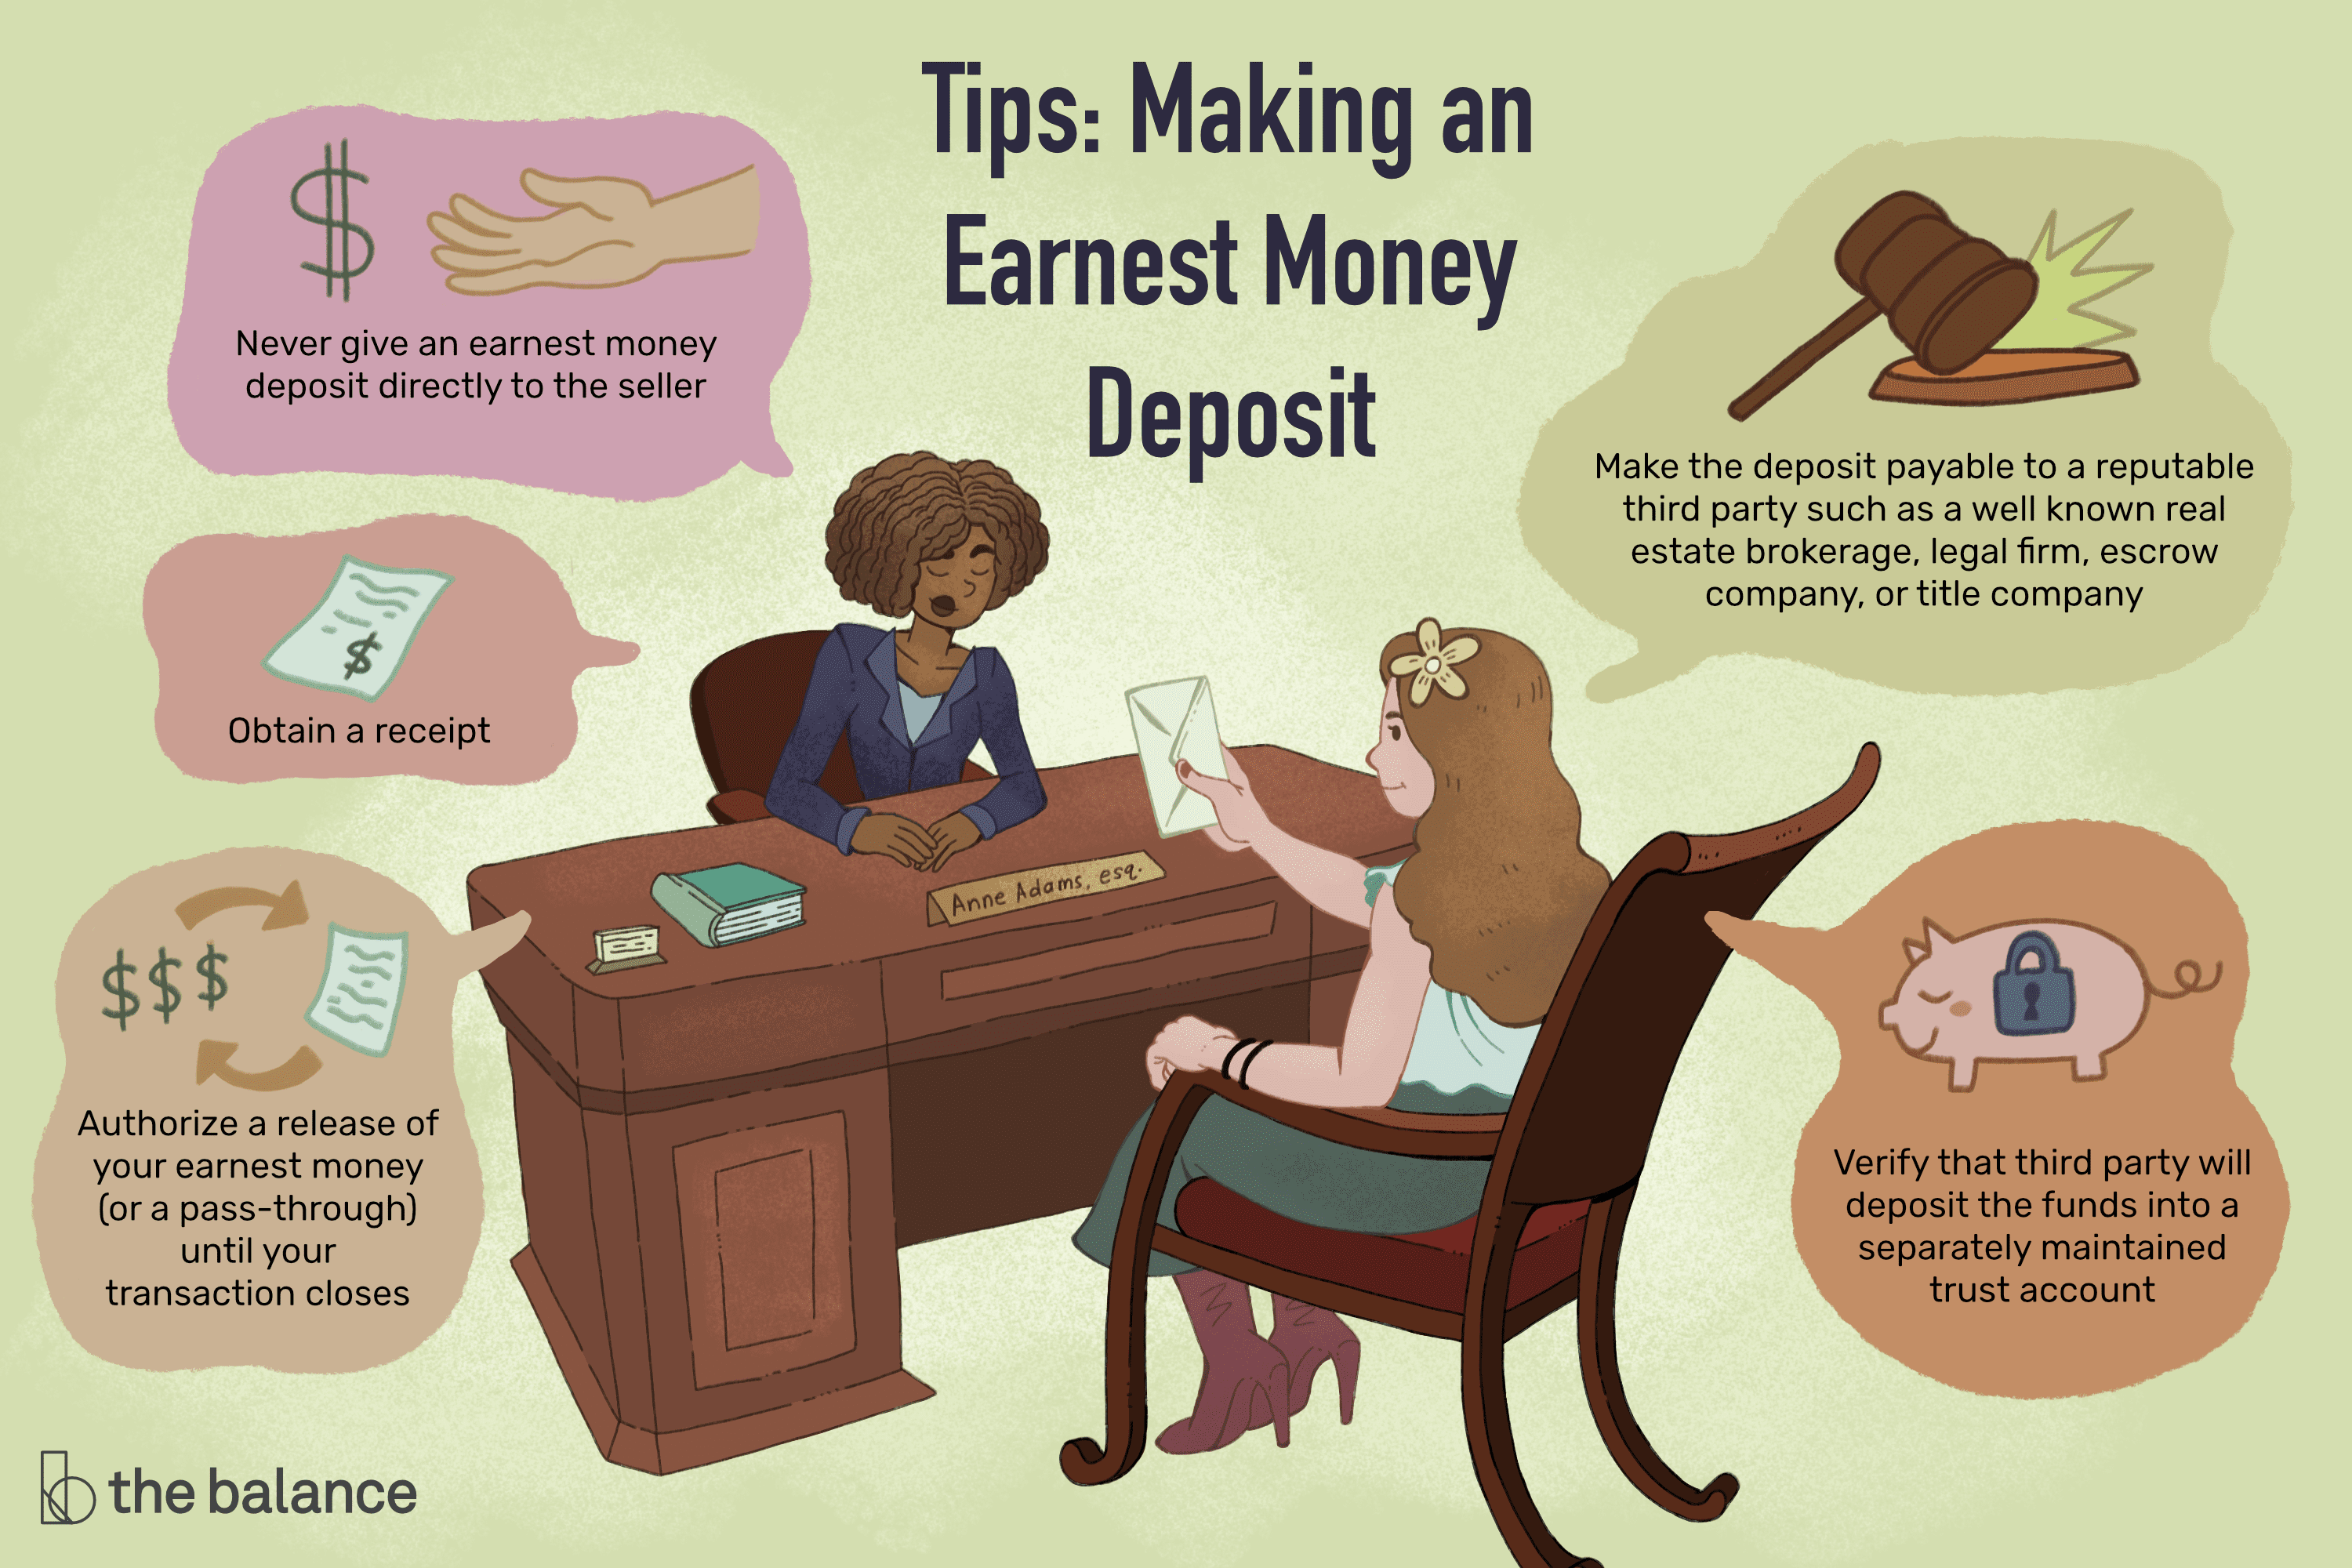 Protect Your Earnest Money Deposit